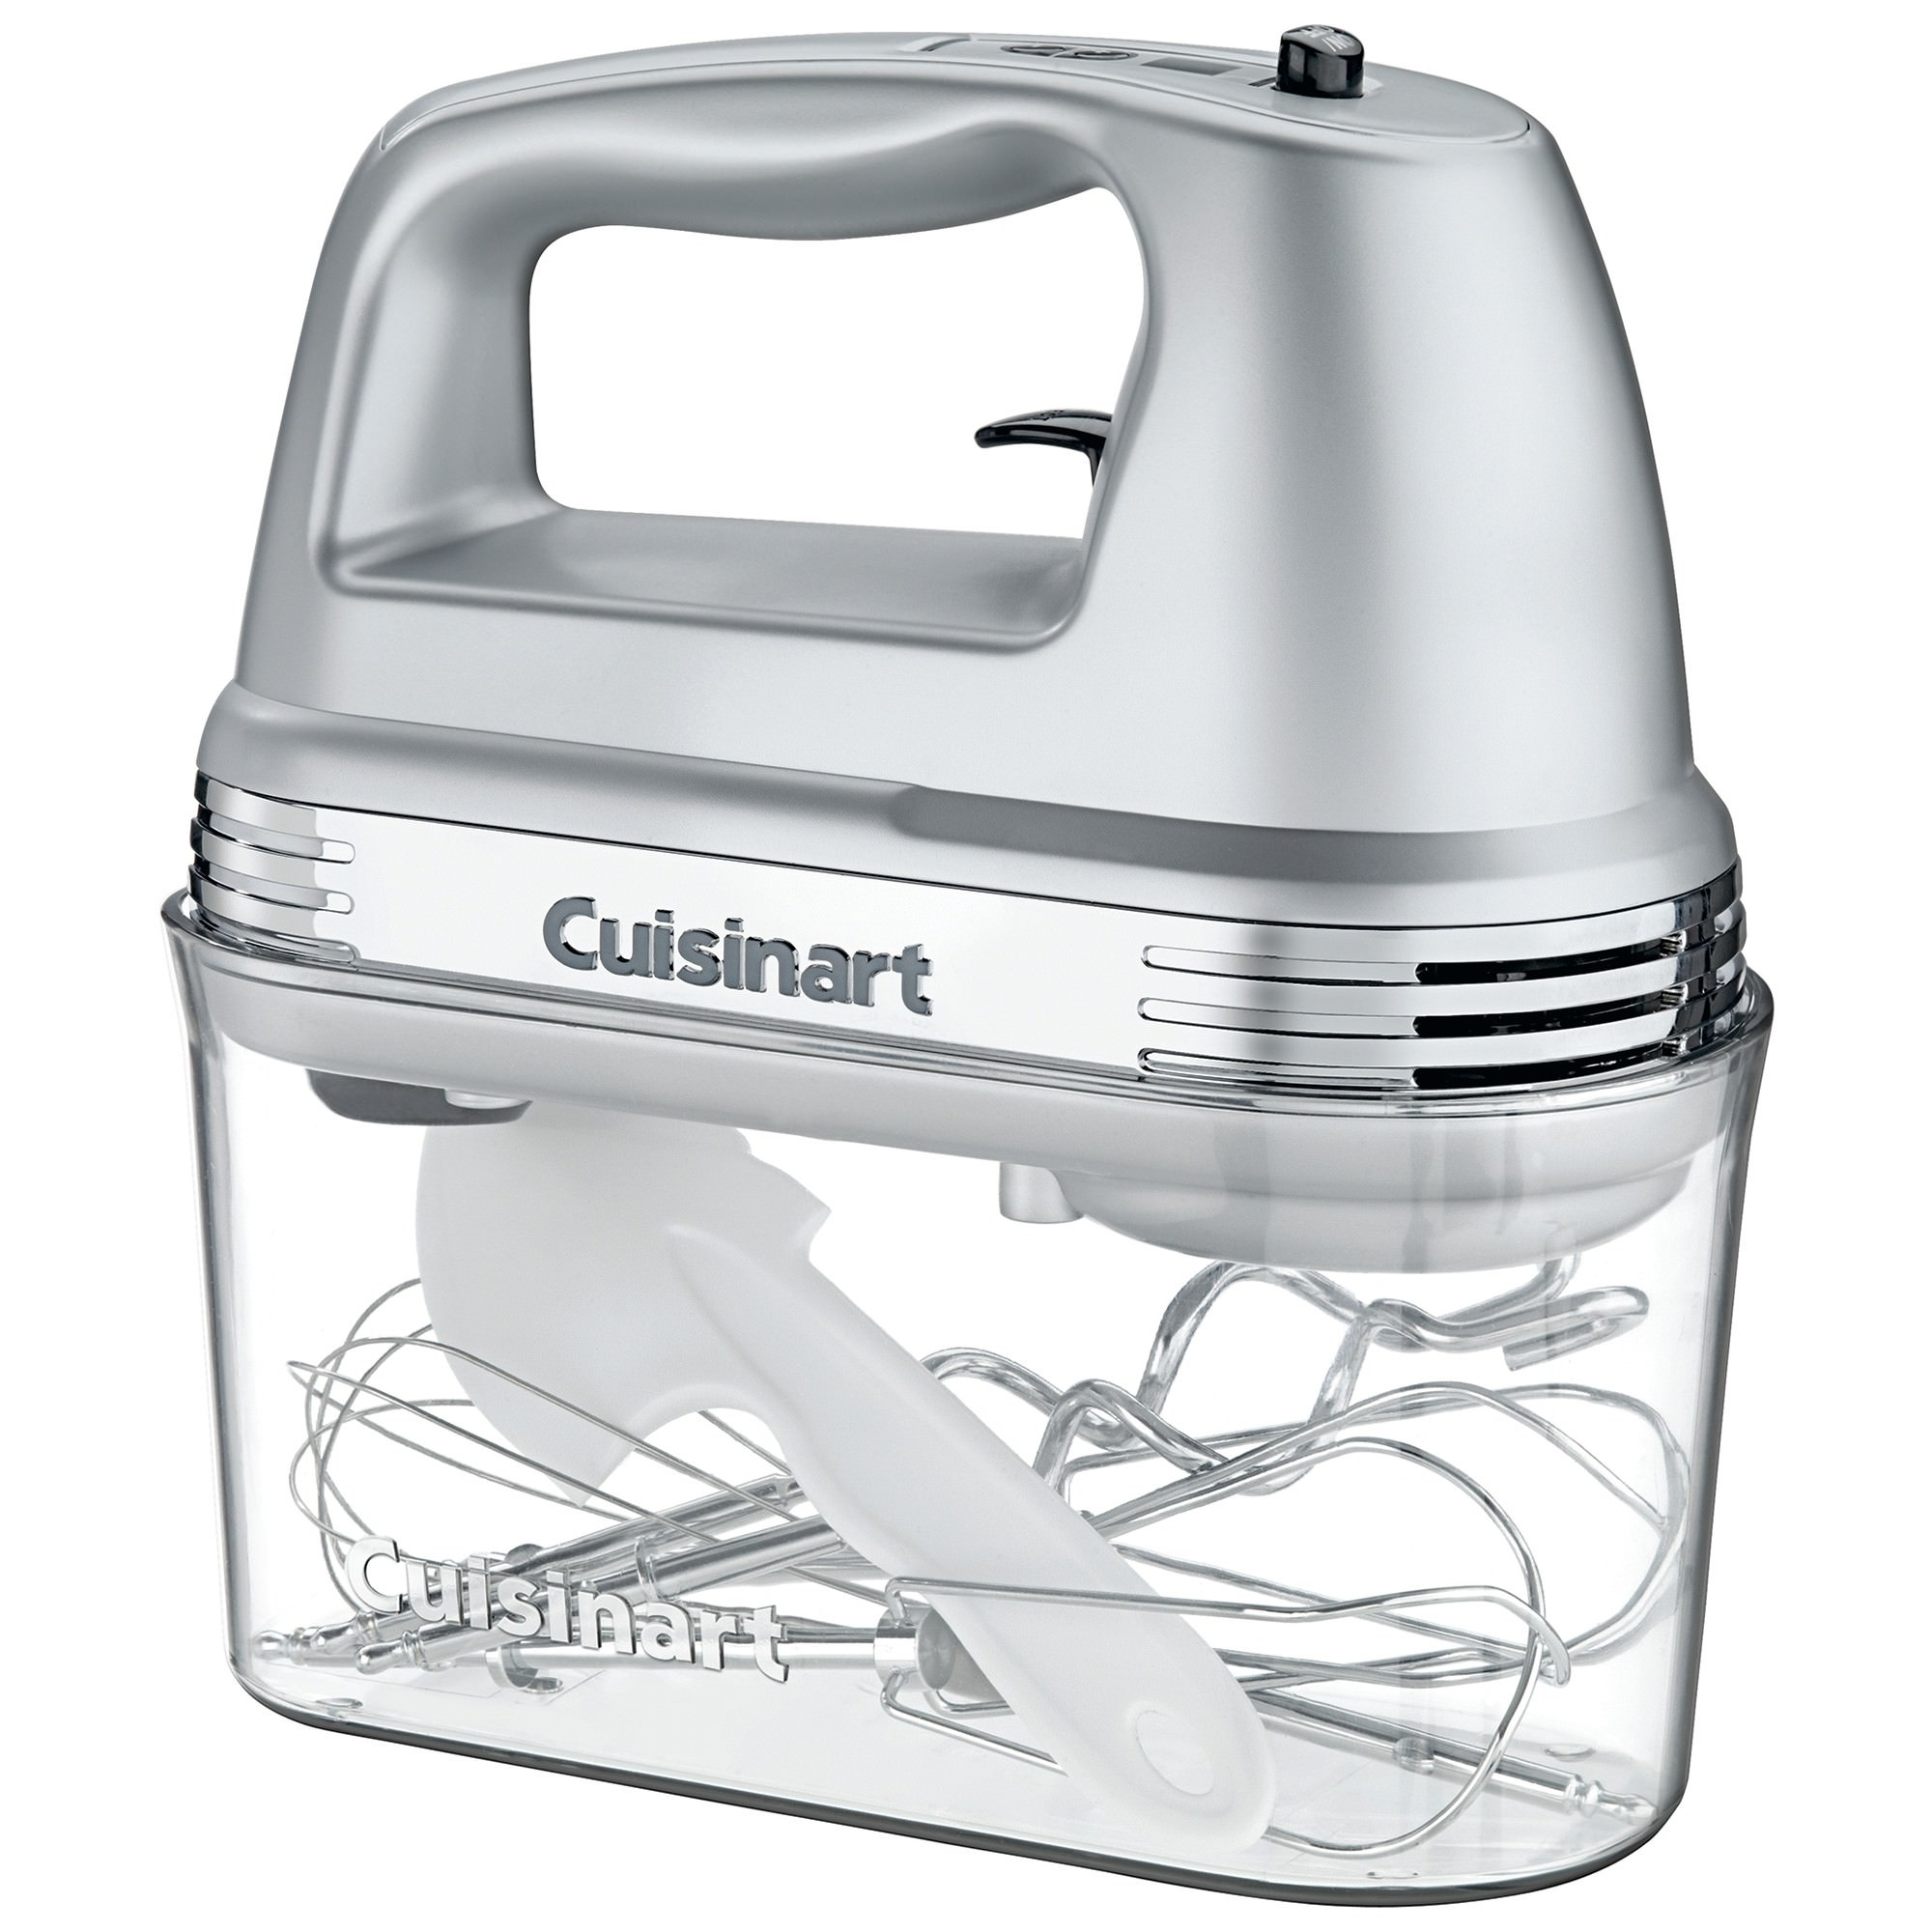 Cuisinart 9 Speed Hand Mixer with Storage Case - Silver